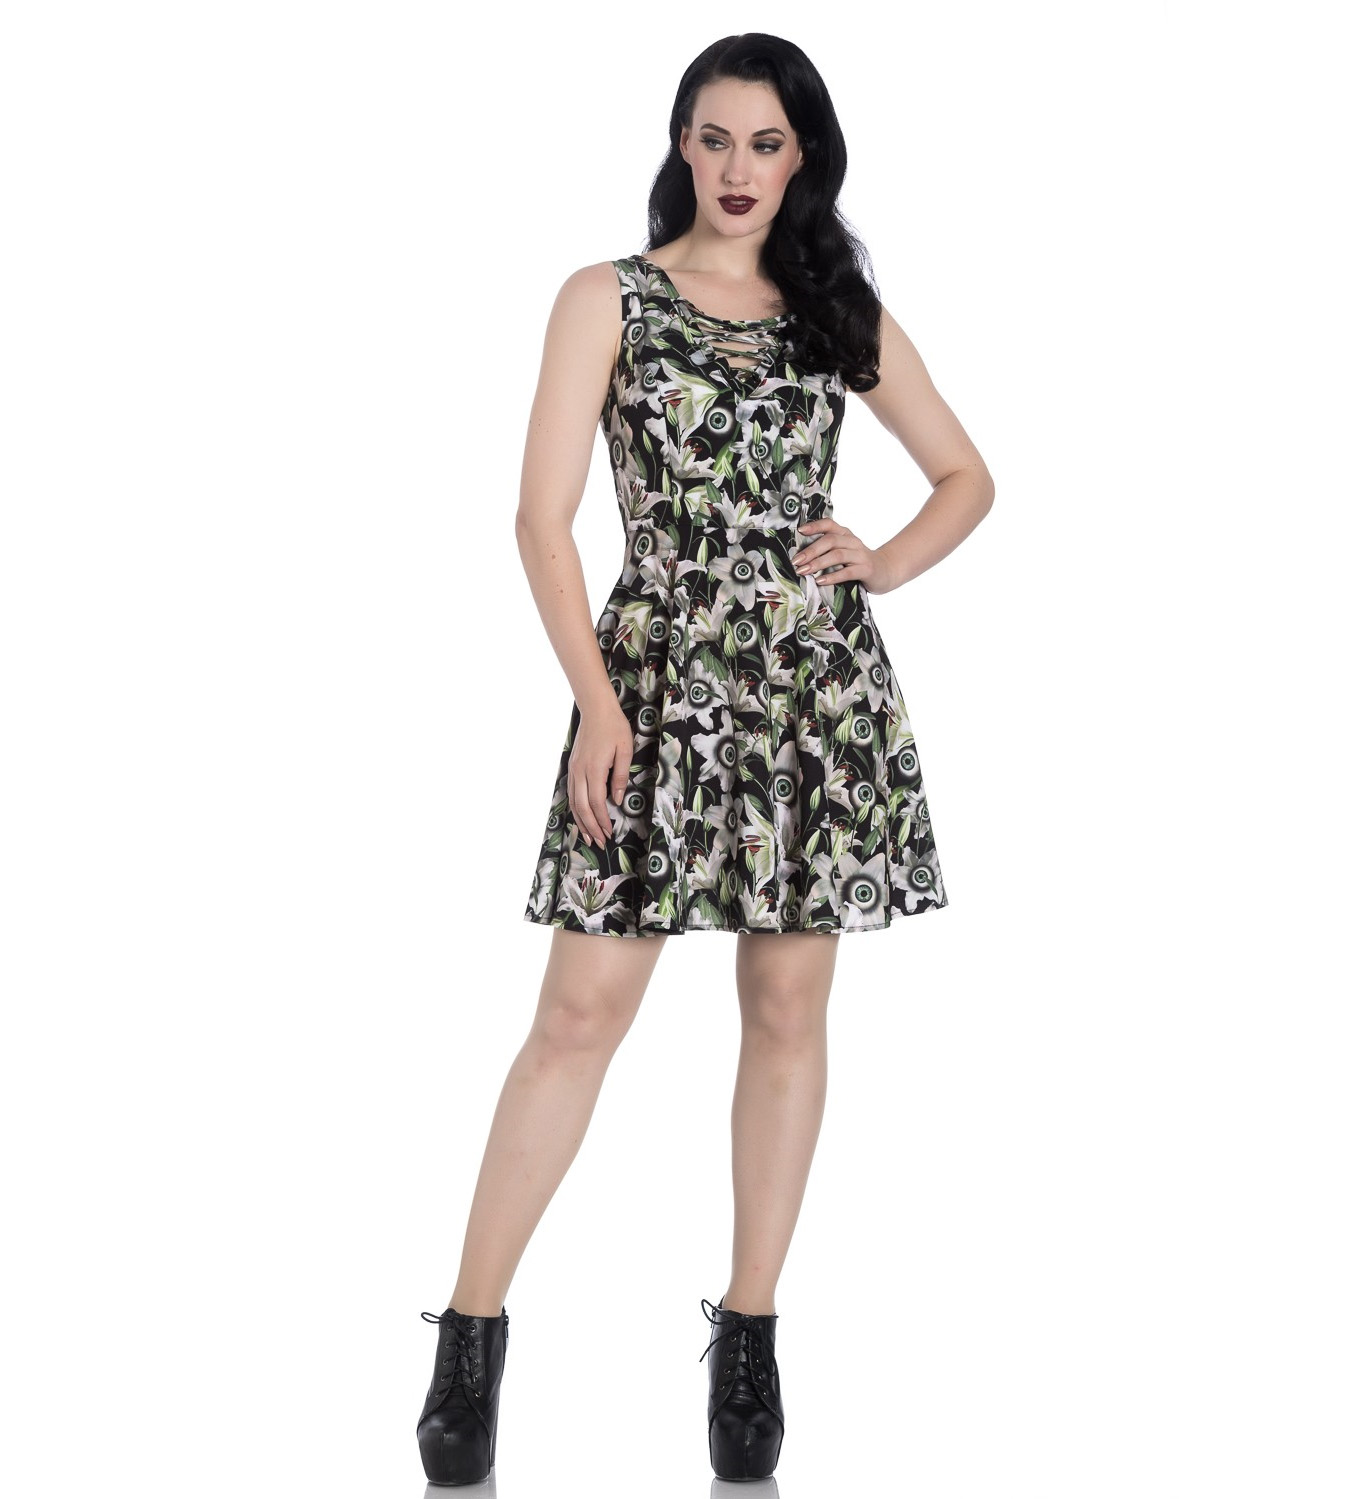 Hell-Bunny-Black-Lace-Up-Goth-Punk-Mini-Dress-PEEPERS-Eyeballs-Flowers-All-Sizes thumbnail 3